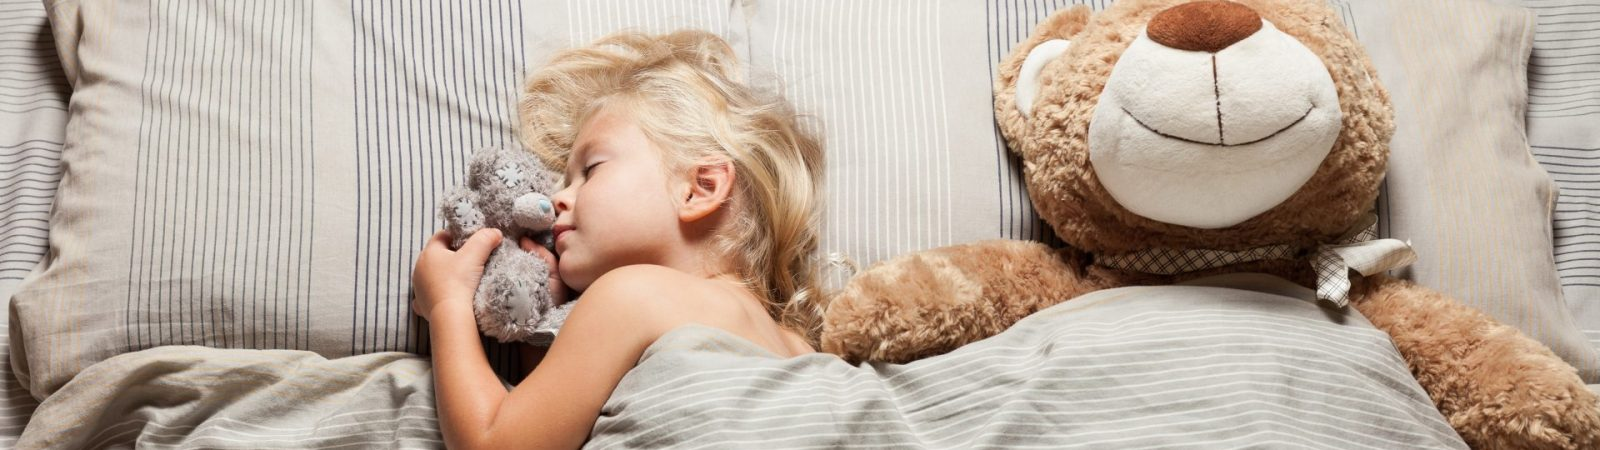 Beautiful child girl sleep in bed with teddy bear. Little caucasian kid. Rest cute dream.